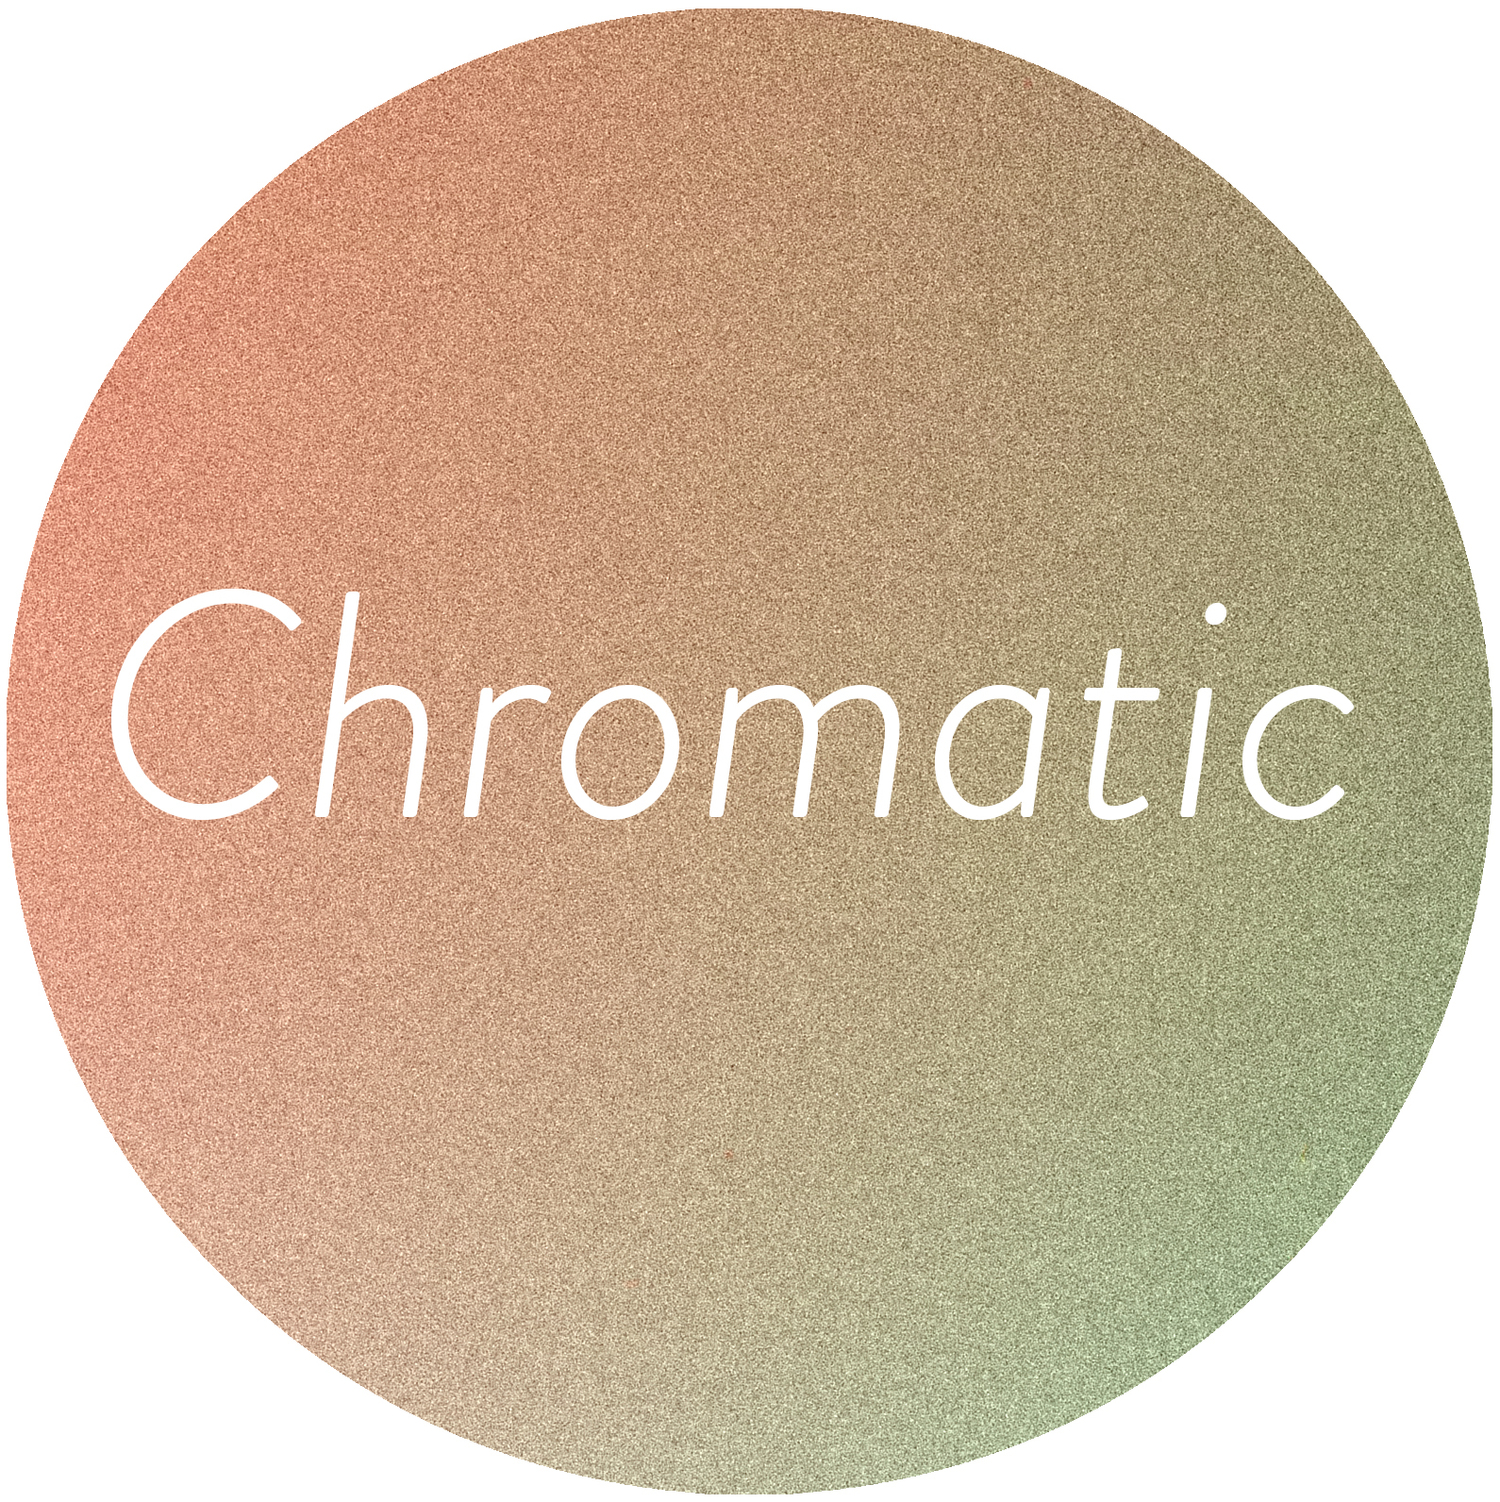 Chromatic: commercial / lifestyle / editorial / portrait / Photography by Craig Okraska